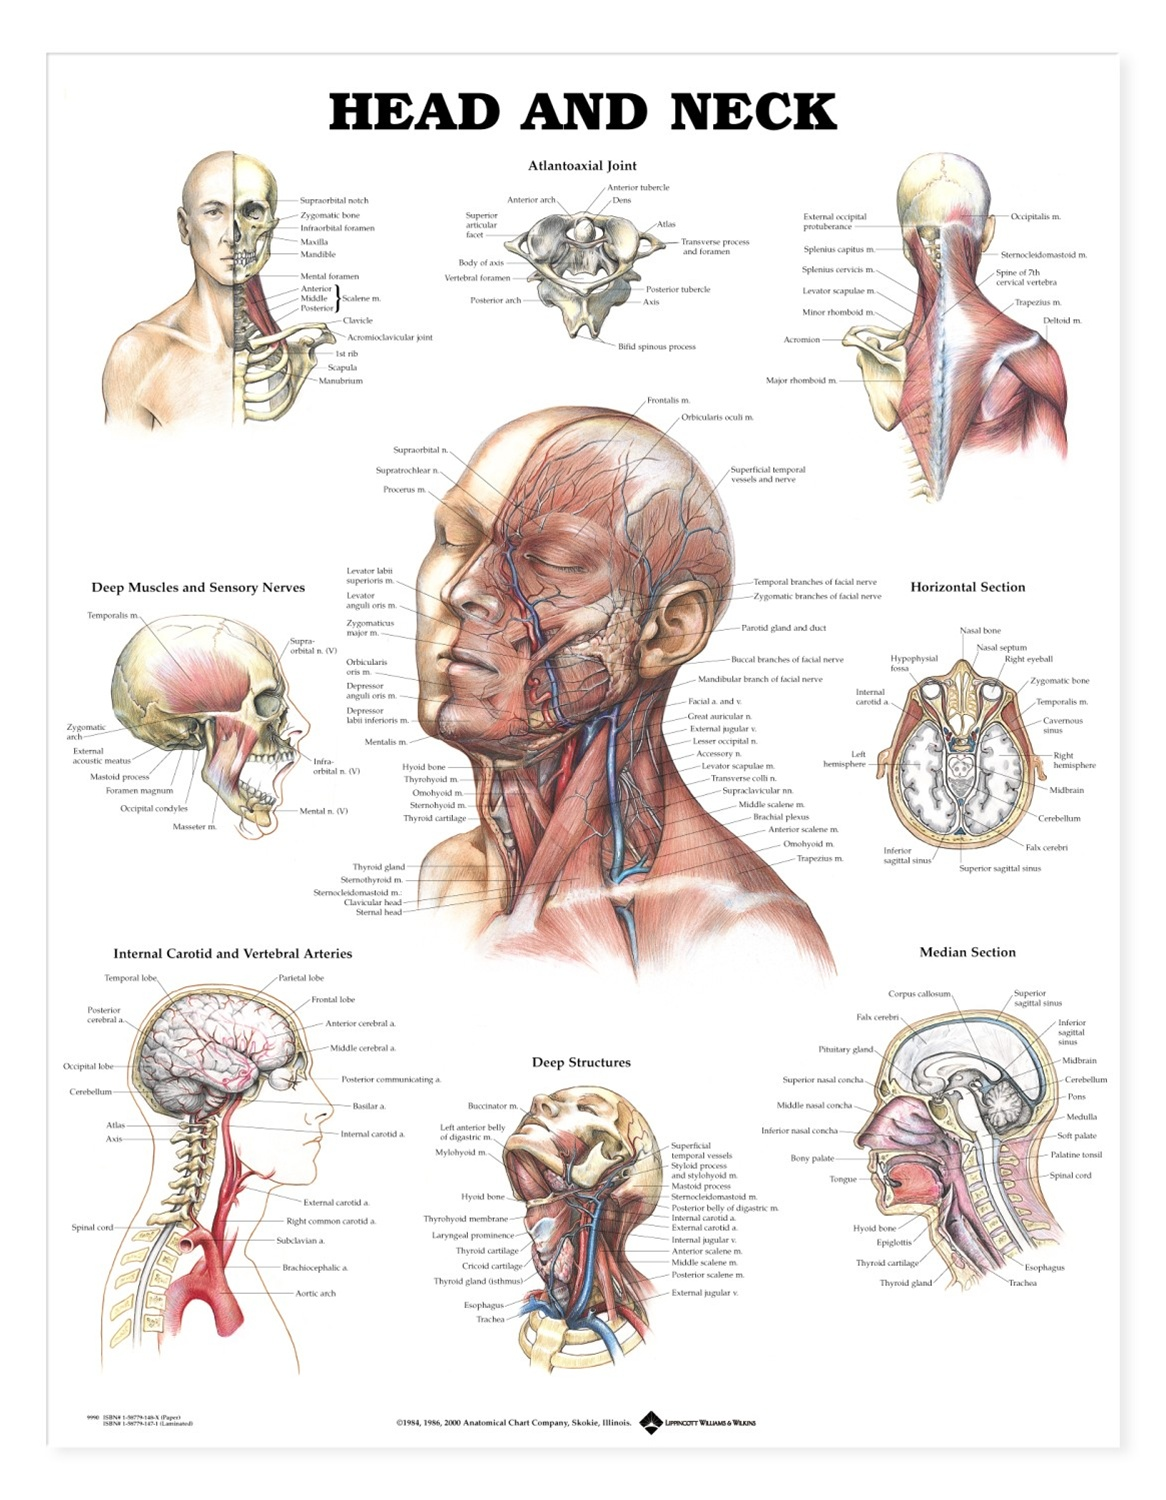 Anatomy of the neck and head